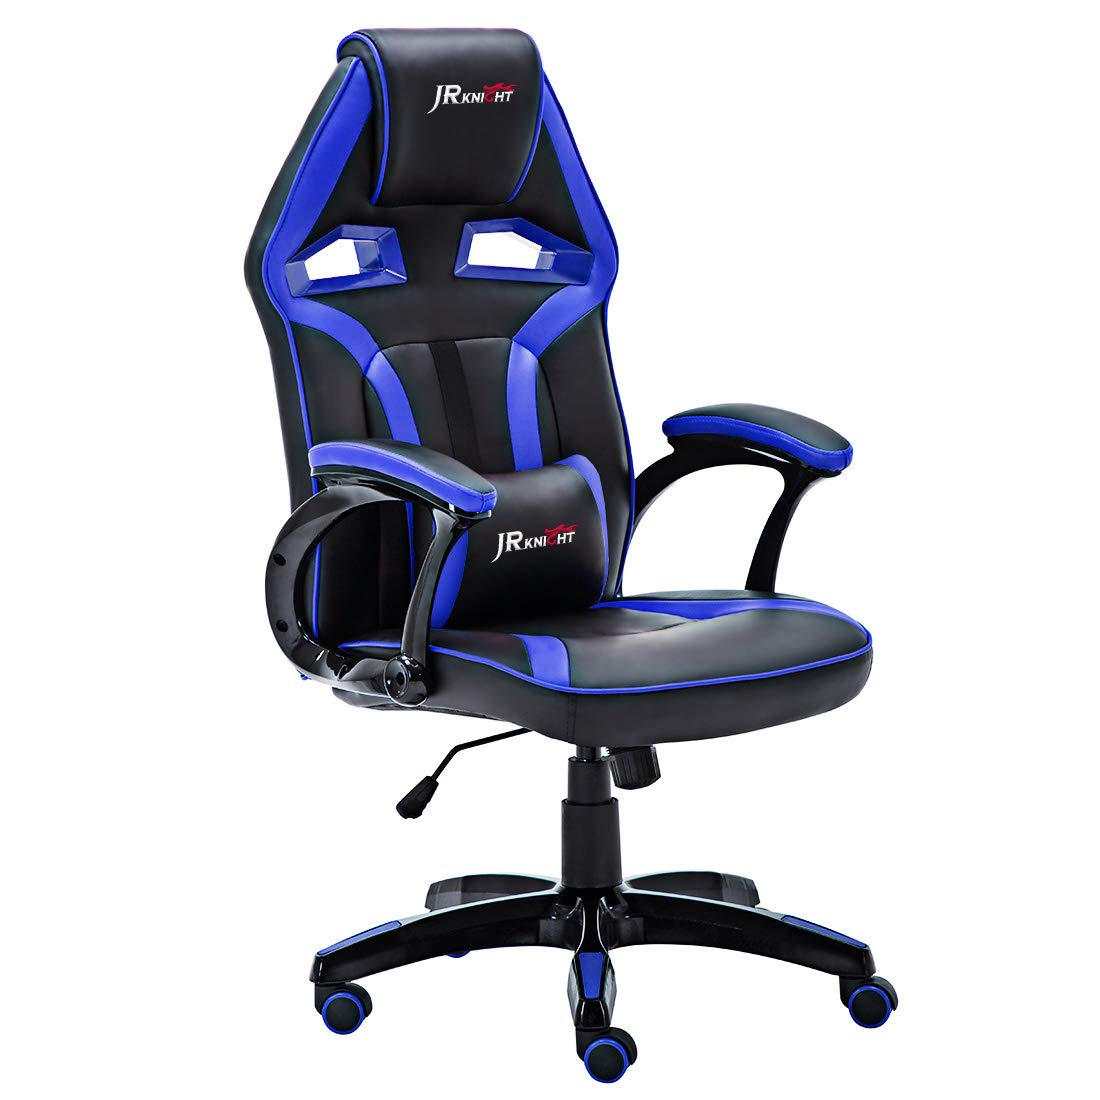 JR Knight - Silla estilo deportivo, oficina en casa, gaming, silla giratoria exclusiva de piel, color Black&Blue: Amazon.es: Hogar